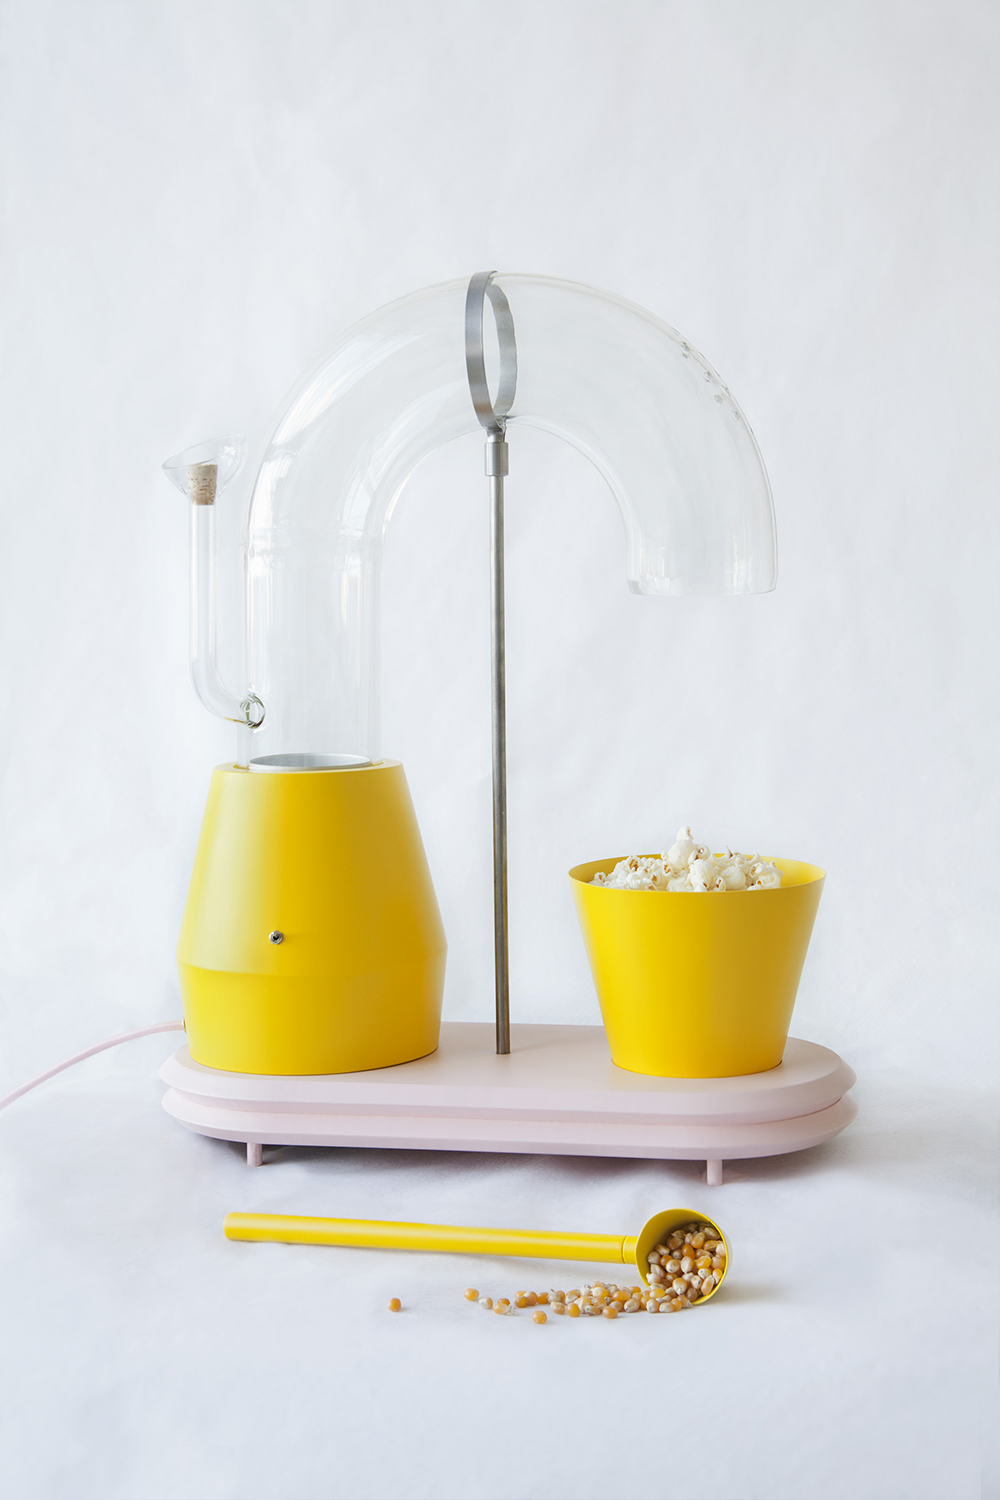 Popcorn_Monsoon_Jolene_Carlier_005